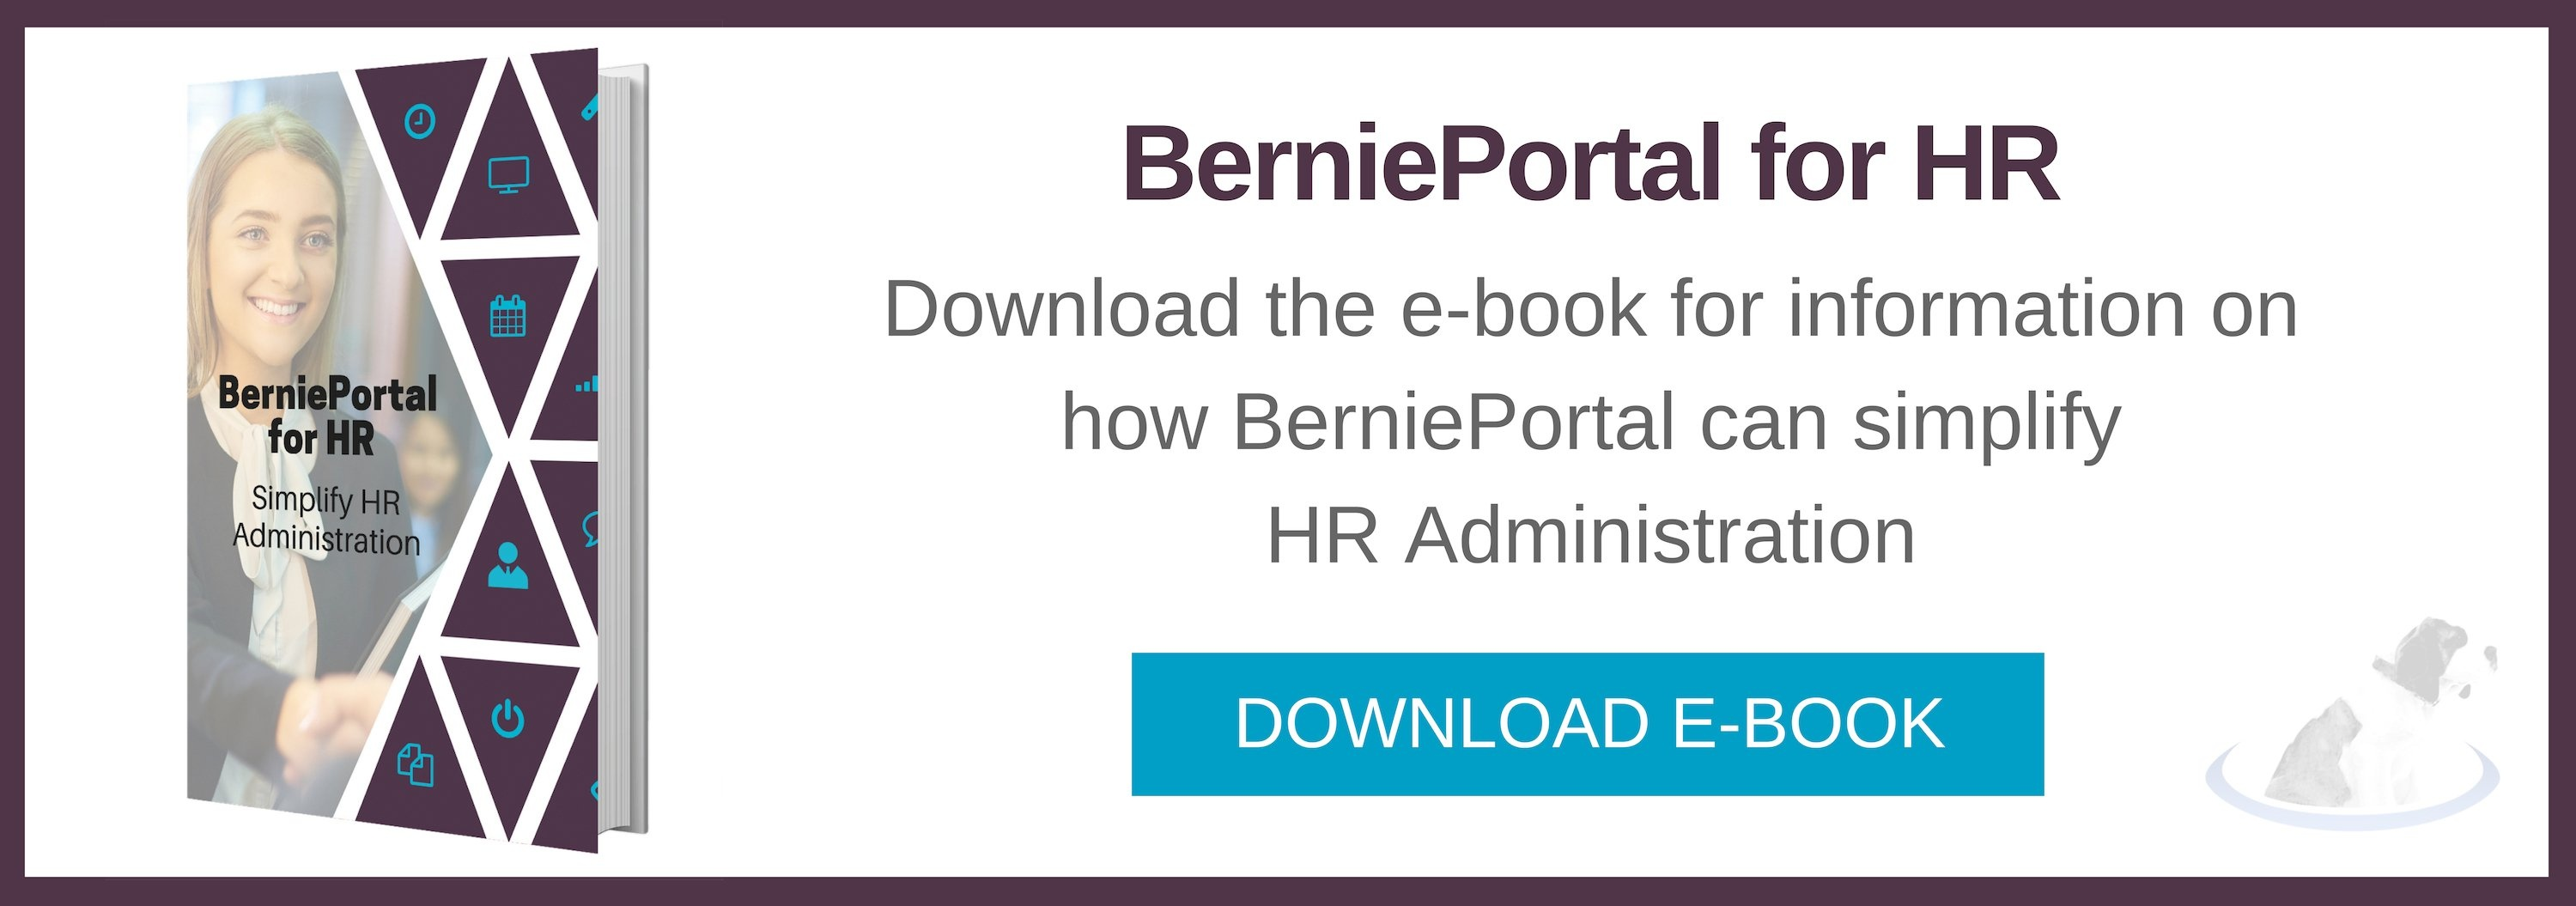 BerniePortal for HR (BP)